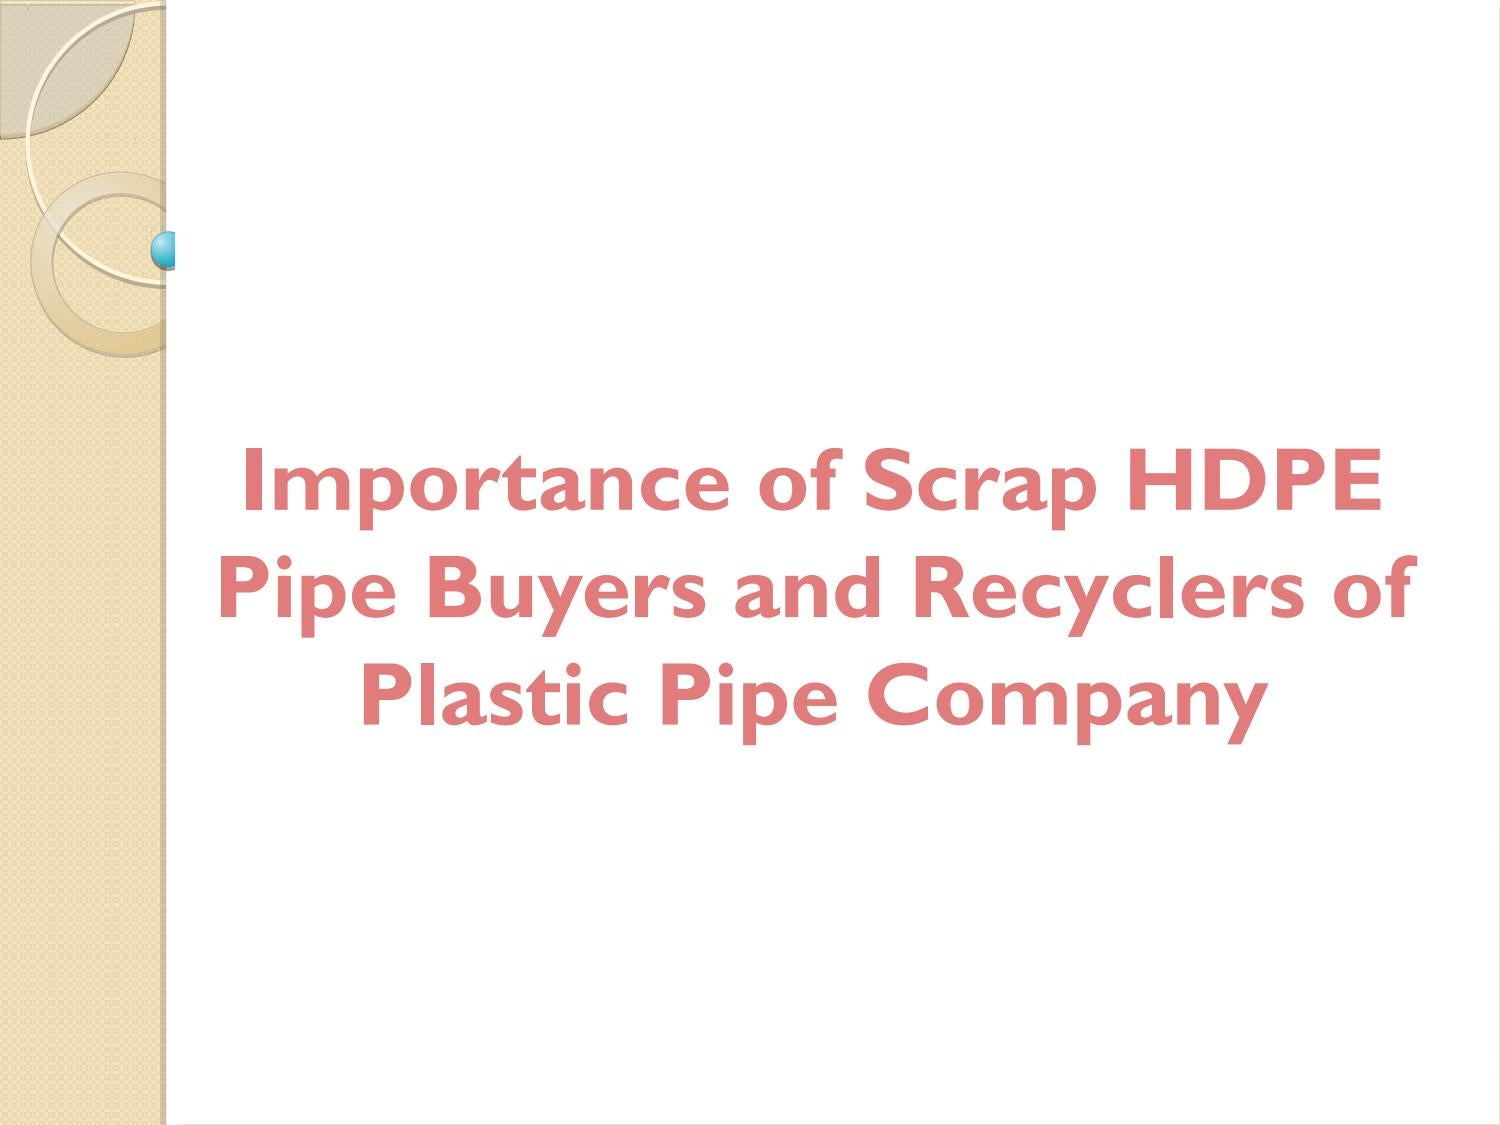 Importance of Scrap HDPE Pipe Buyers and Recyclers of